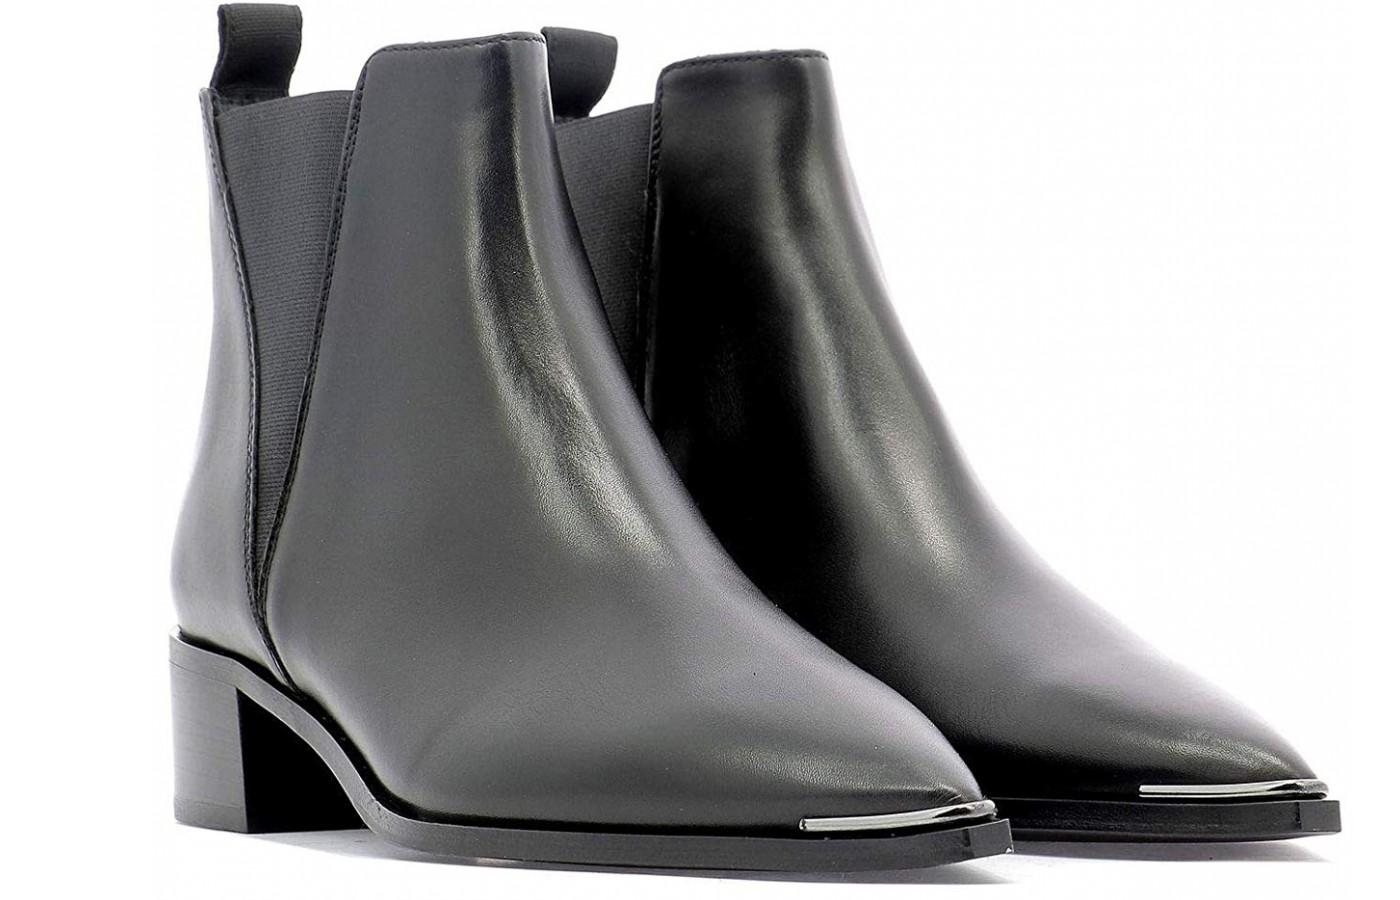 Acne Studios Jensen is a stylish pair of boots